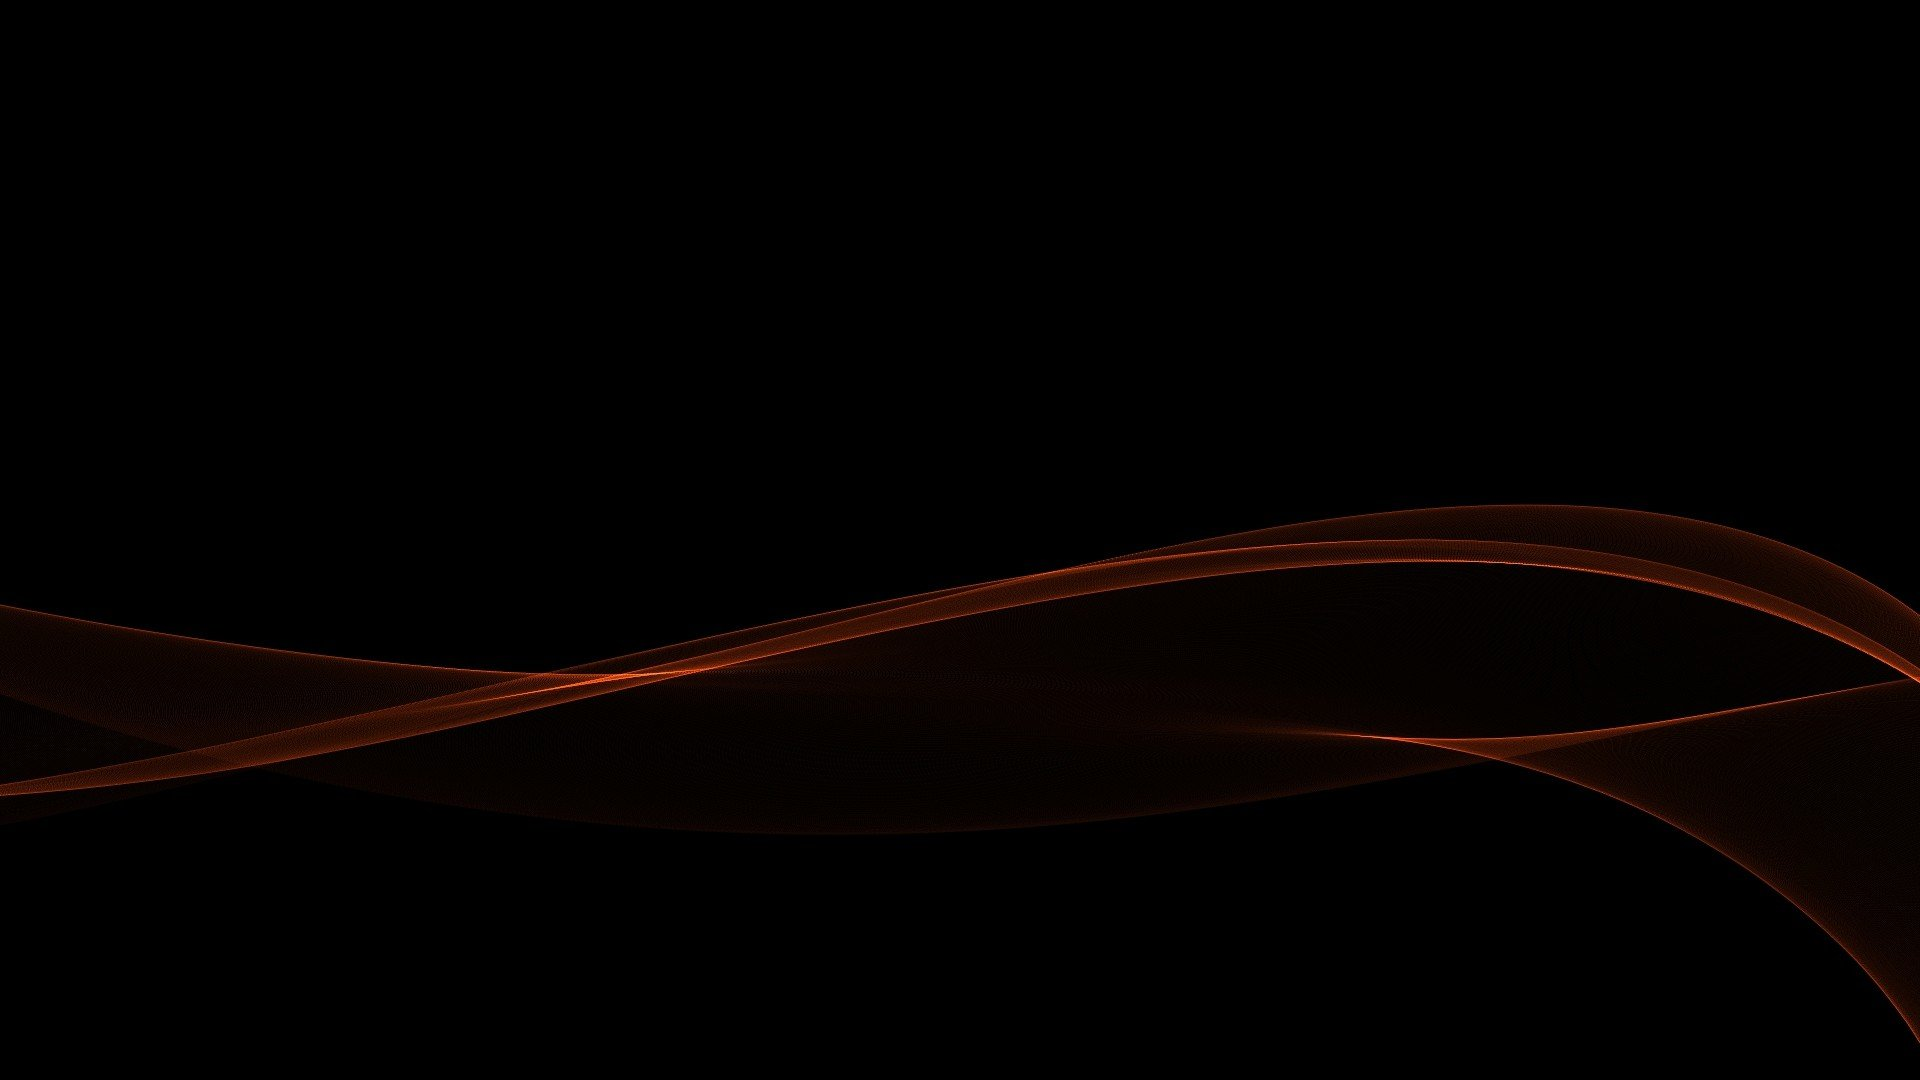 Black Home Wallpaper Red Gradient Minimalistic Waves Black Abstract Wallpaper